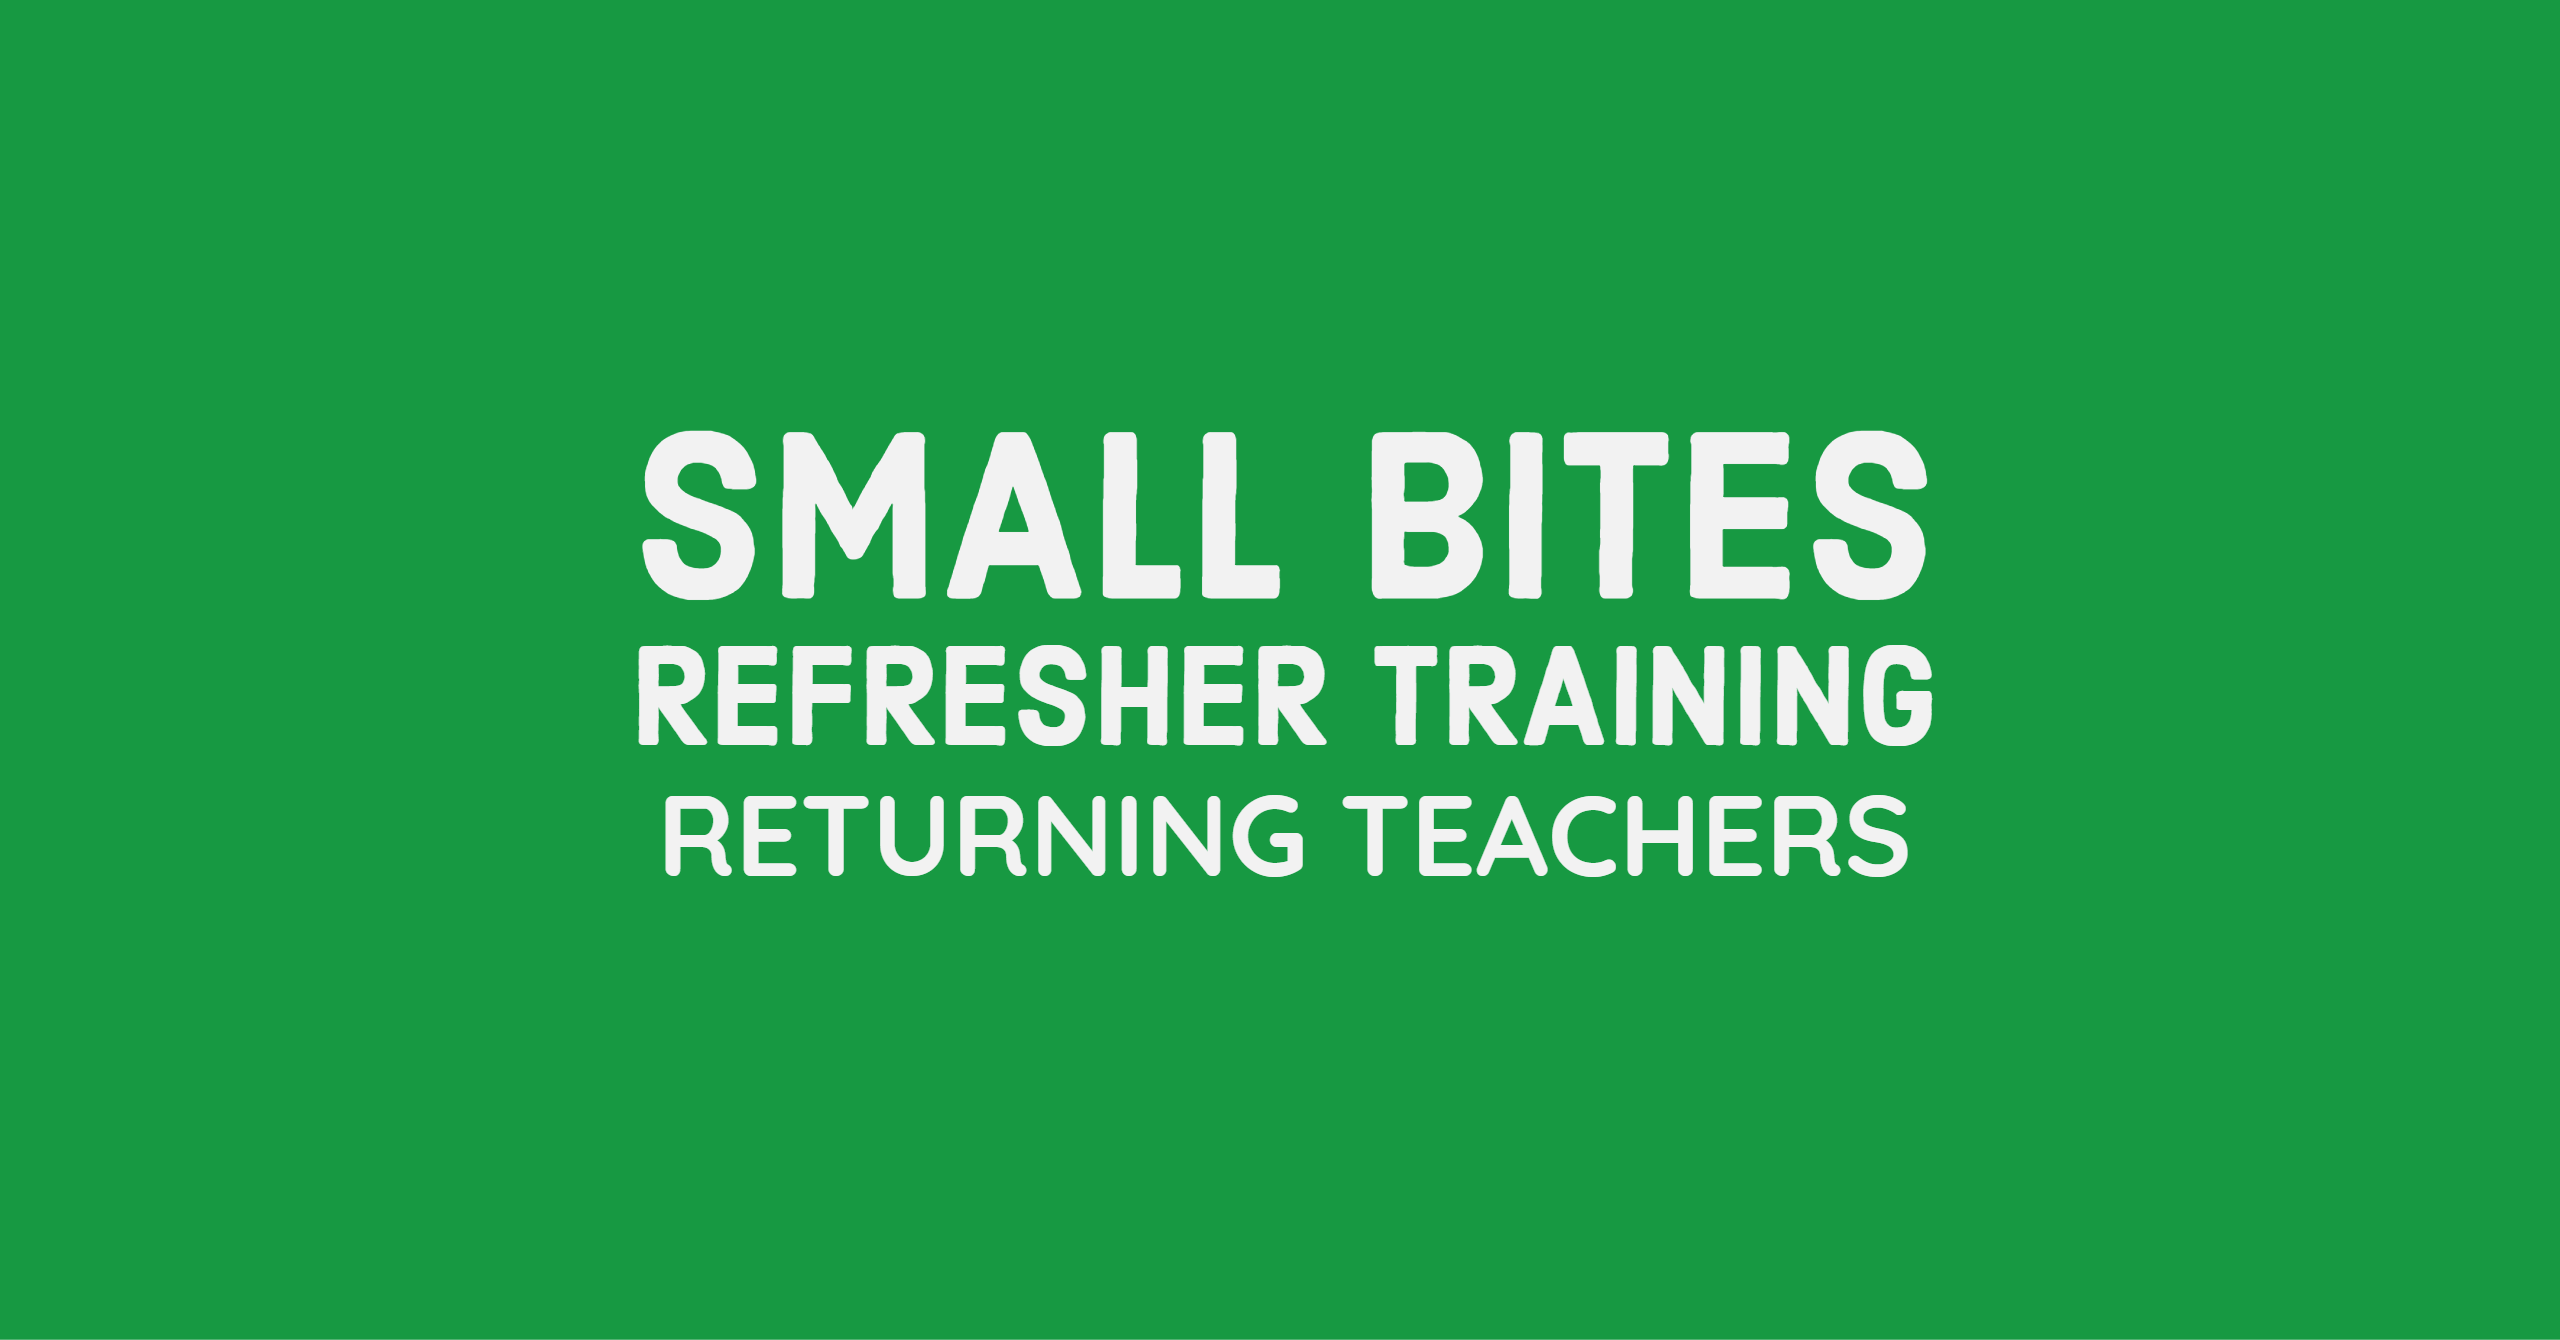 Training: Small Bites Refresher Training